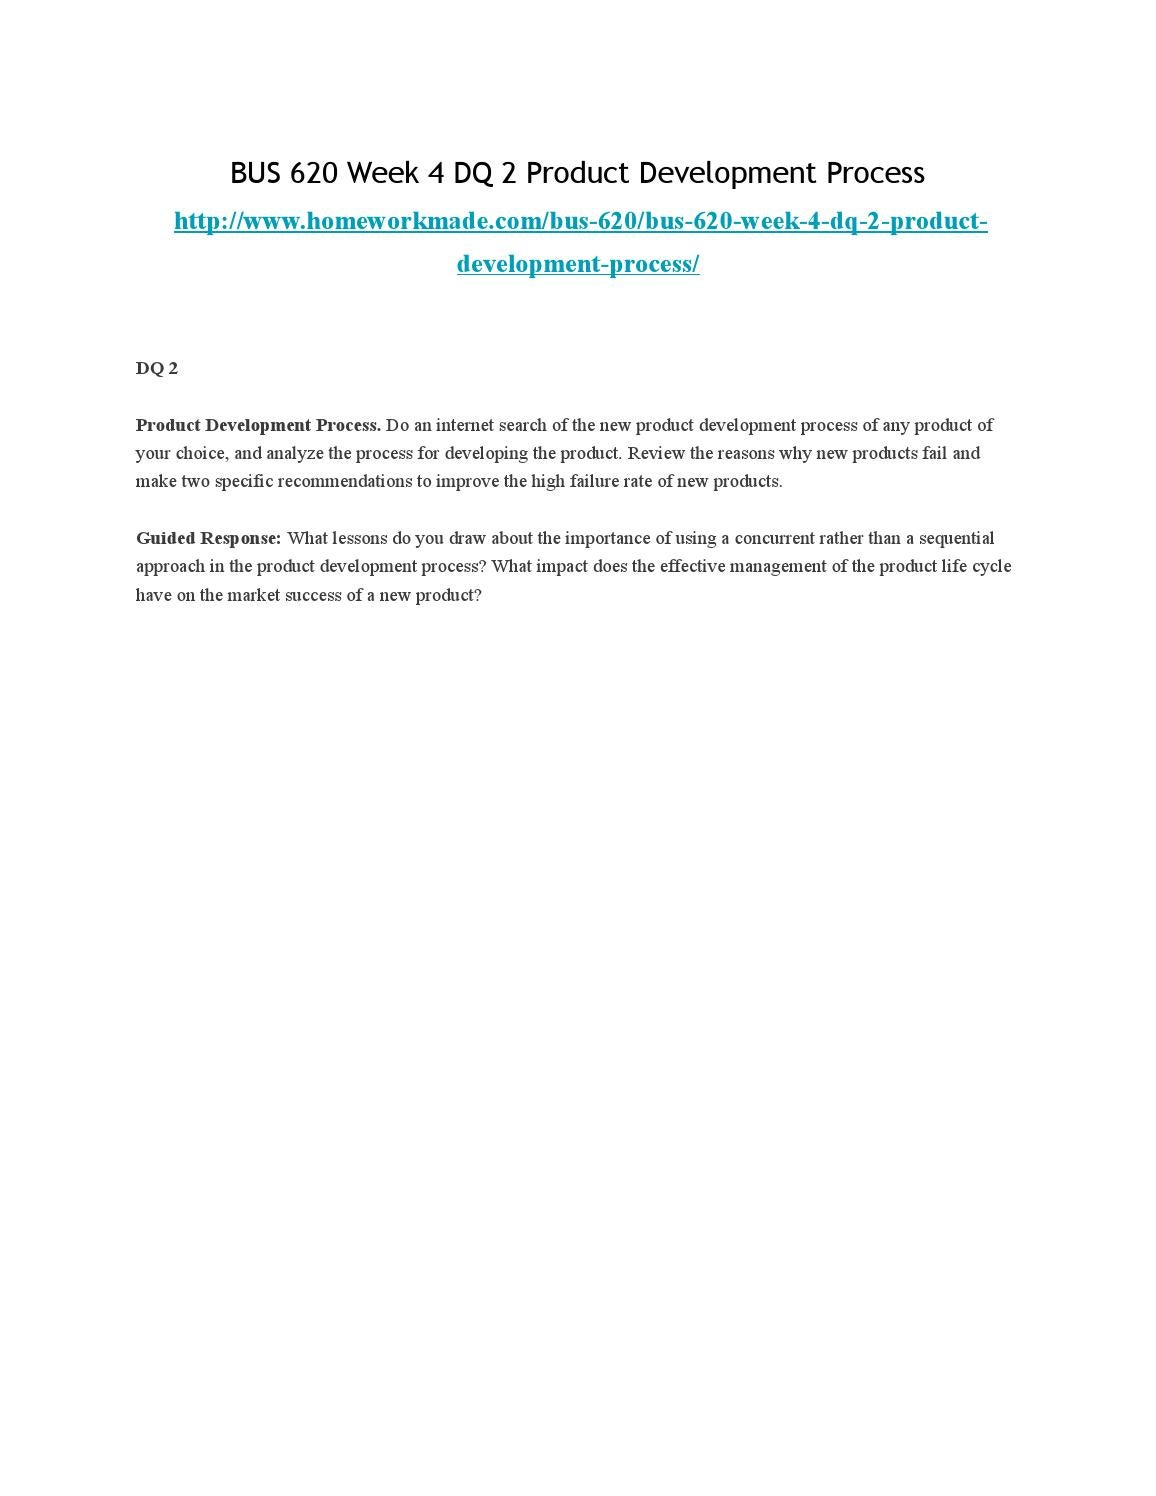 causes of new product failure pdf